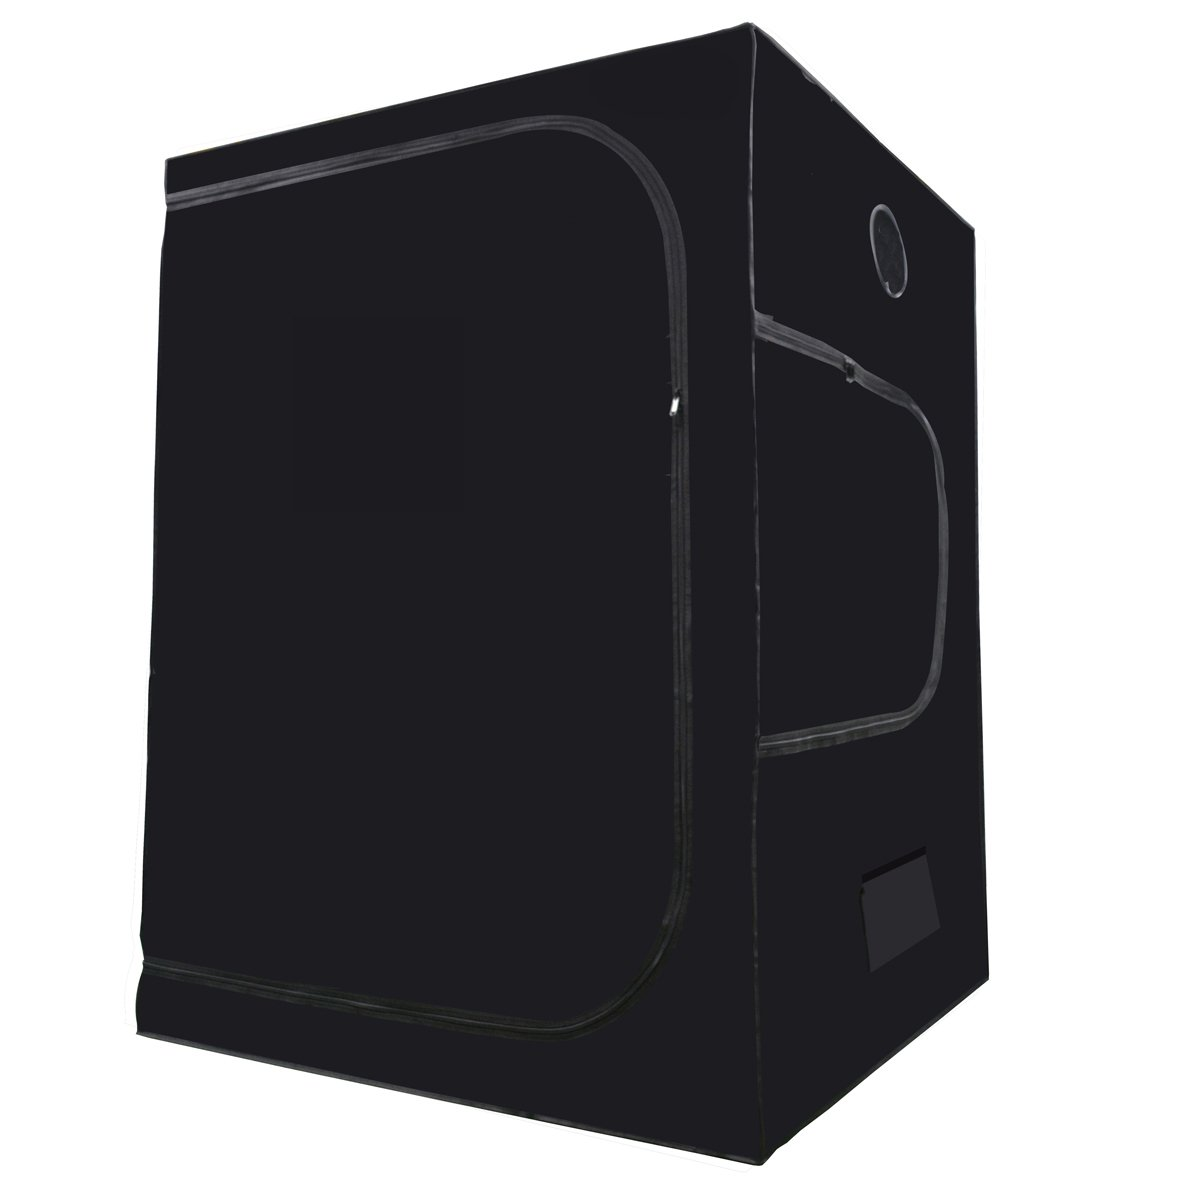 MELONFARM Mylar Hydroponic 60''X60''X80'' Grow Tent With Removable Floor Tray for Indoor Seedling Pant Growing 5'x5'